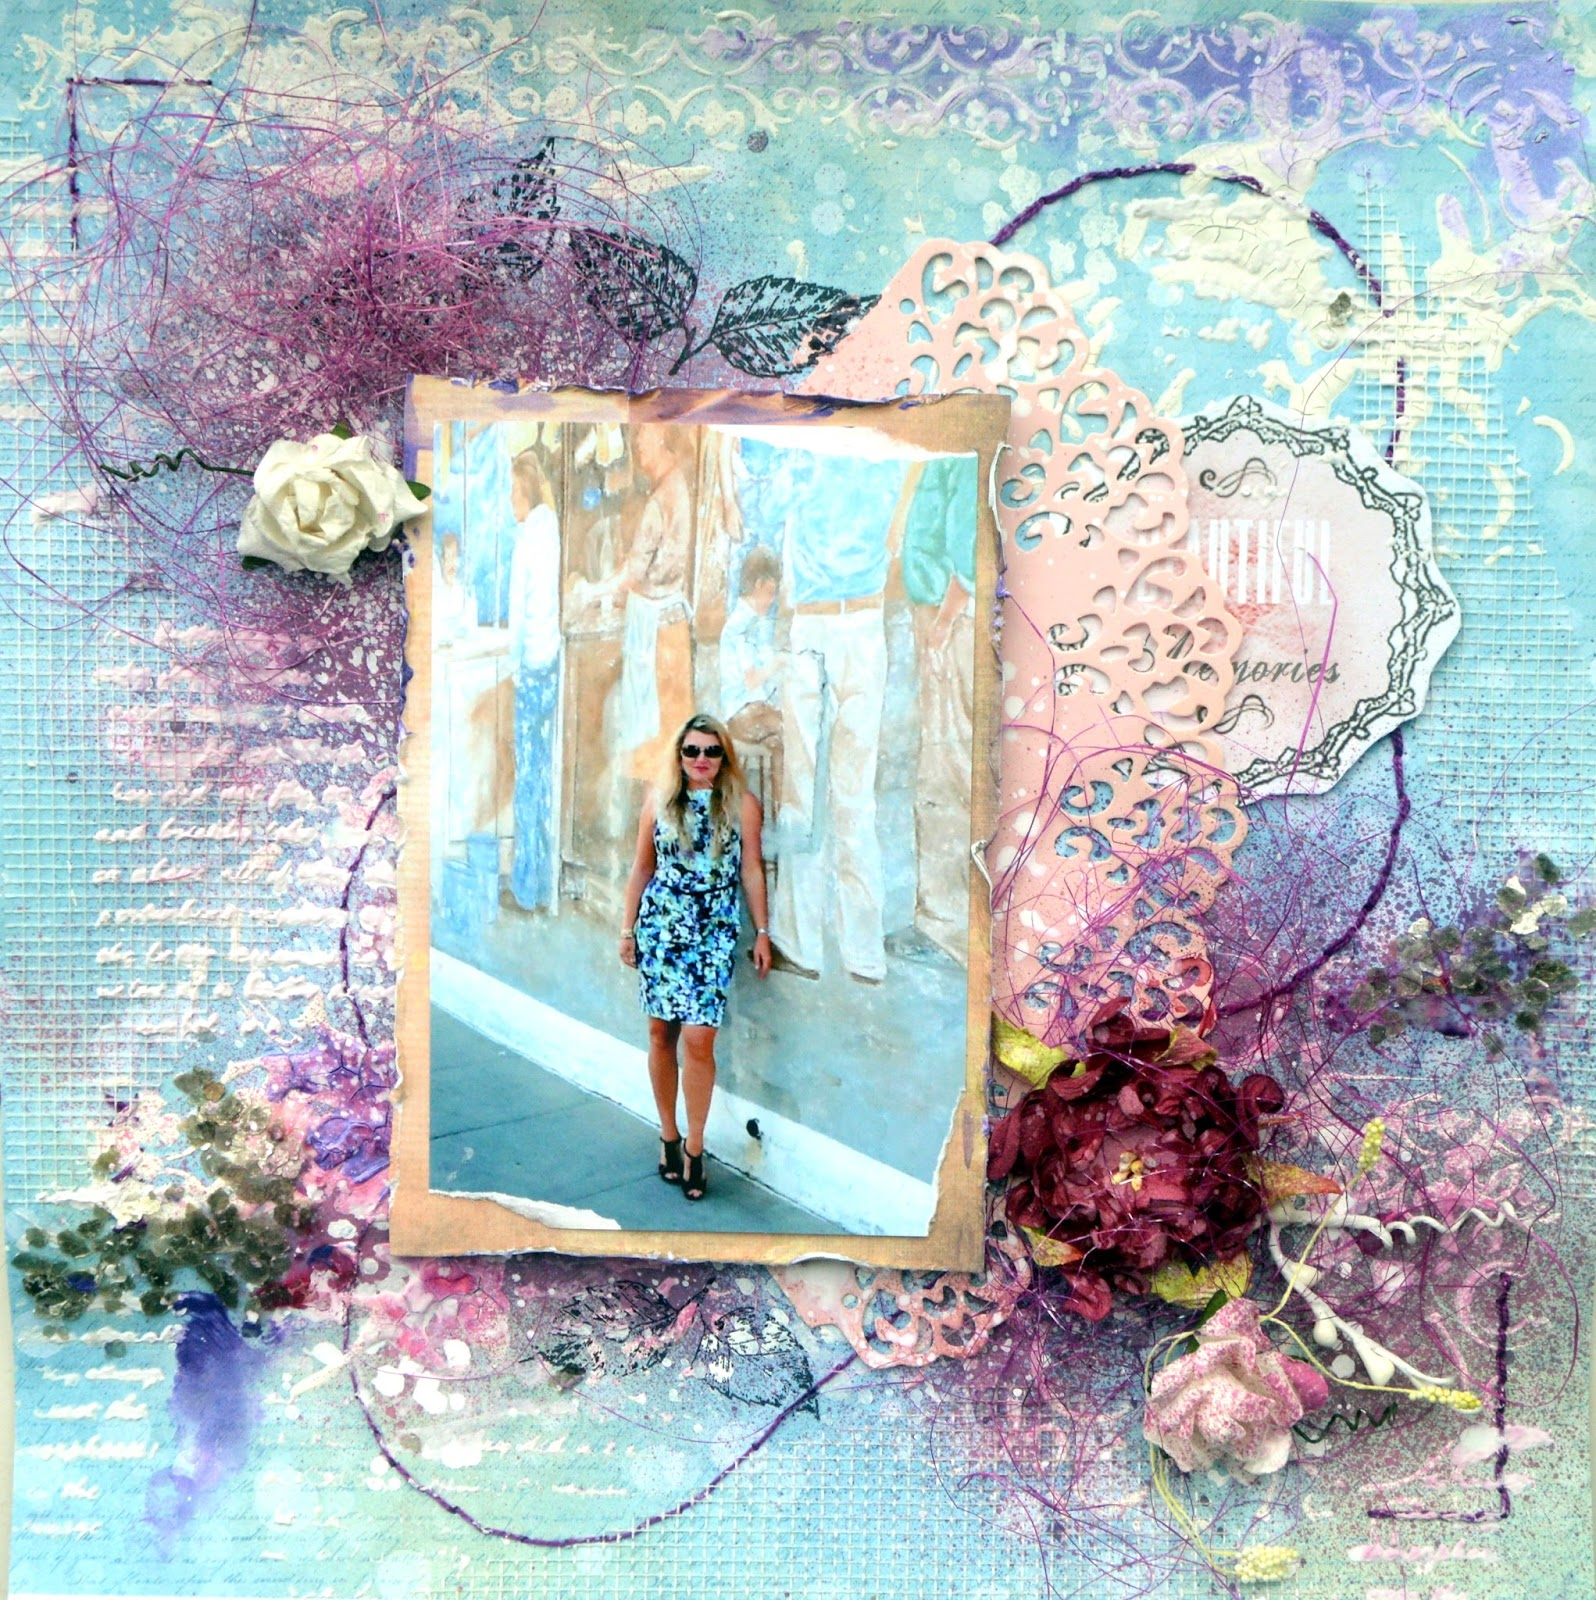 LOVE CALIFORNIA BY AGNIESZKABELLAIDEA MIXED MEDIA PAGE FOR 13ARTS